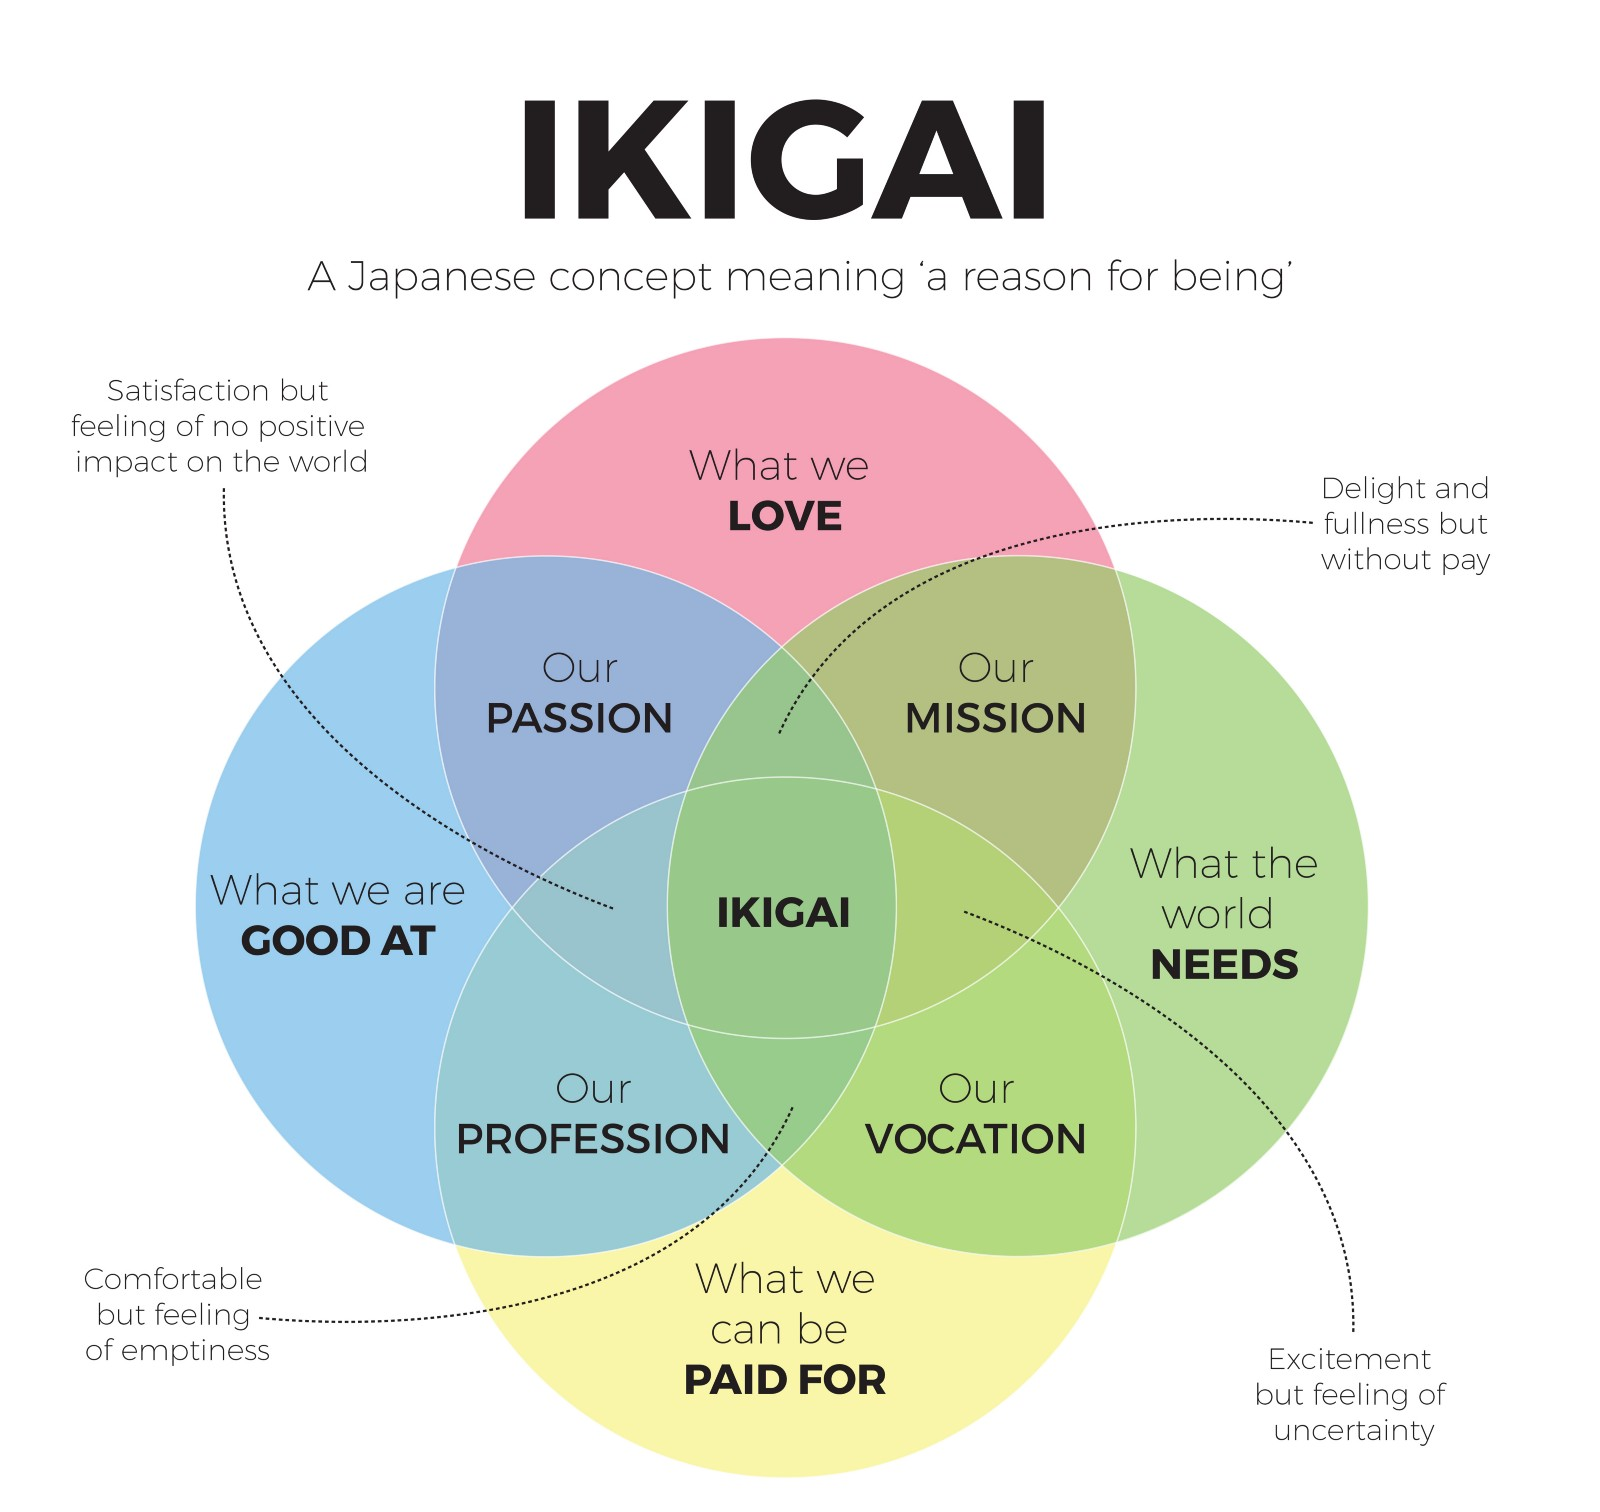 Source : https://medium.com/@WeAreHowDoI/how-ikigai-can-be-applied-to-early-stage-companies-bce2c5d92bfc